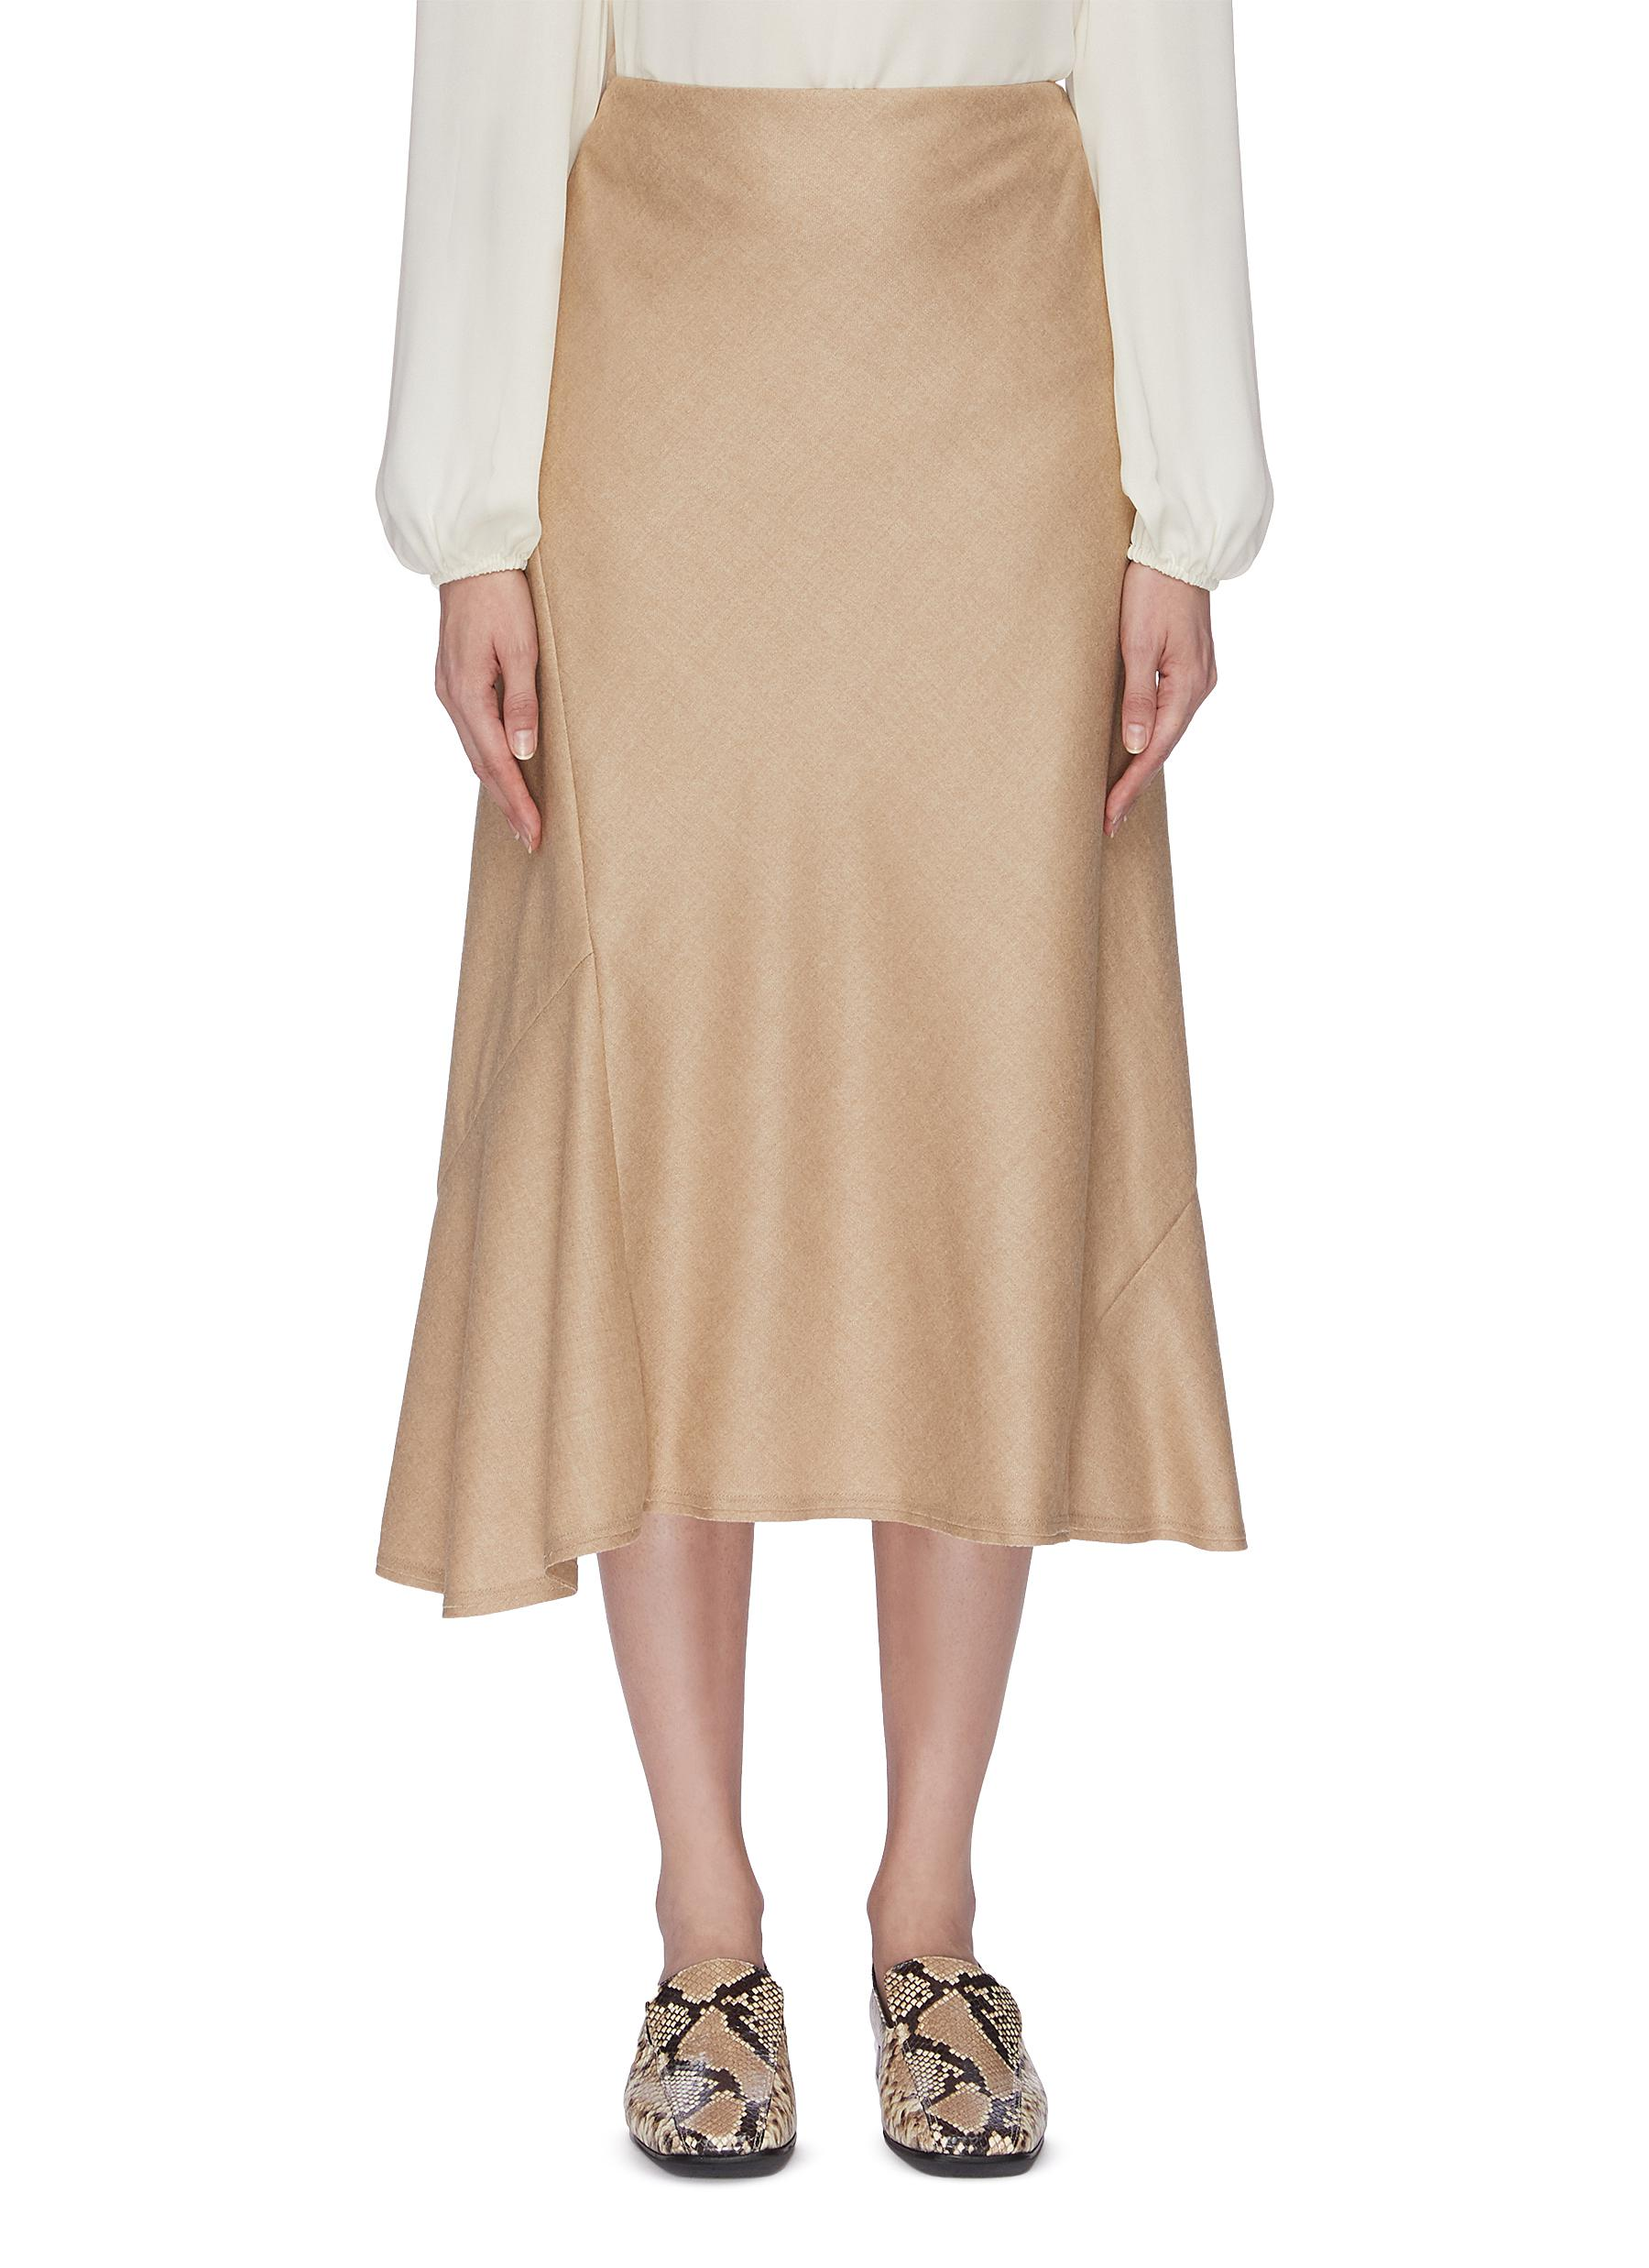 Wool skirt by Theory